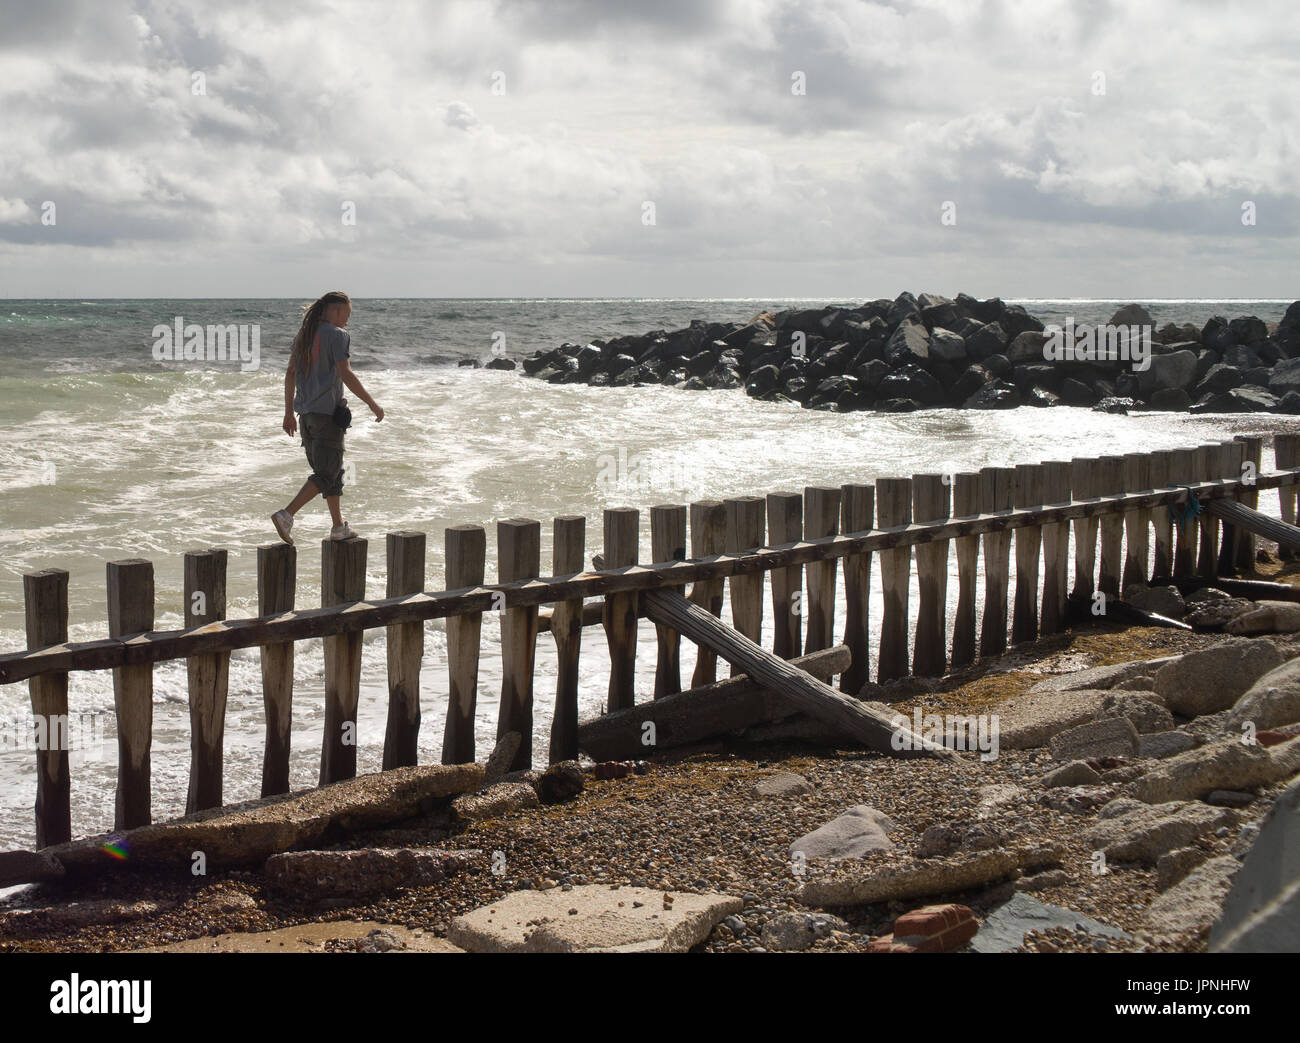 Man walks along a weathered drift fencing at a beach in Hove, East Sussex. - Stock Image